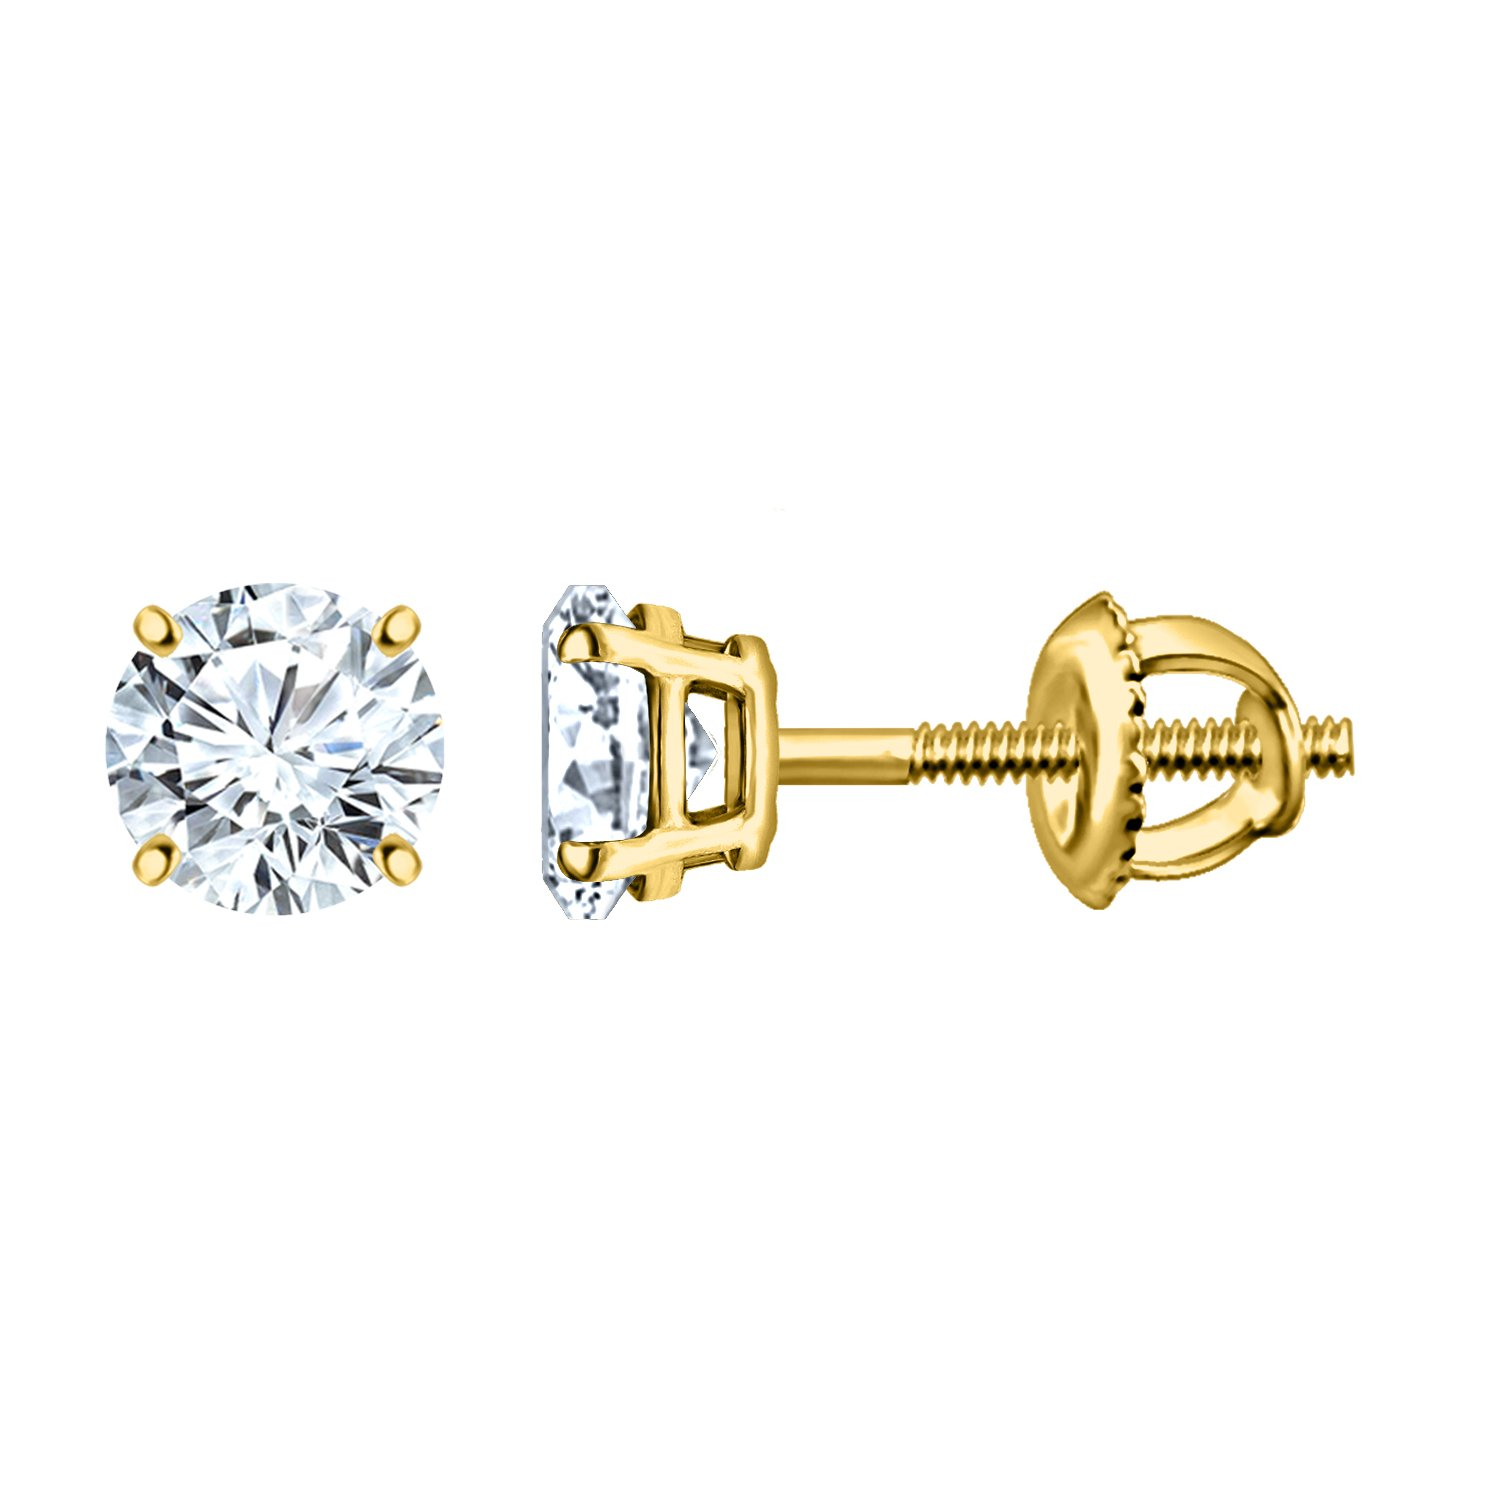 Silver Dew 925 Silver Delight Solitaire Earring For Ladies & Girls In Yellow Plated